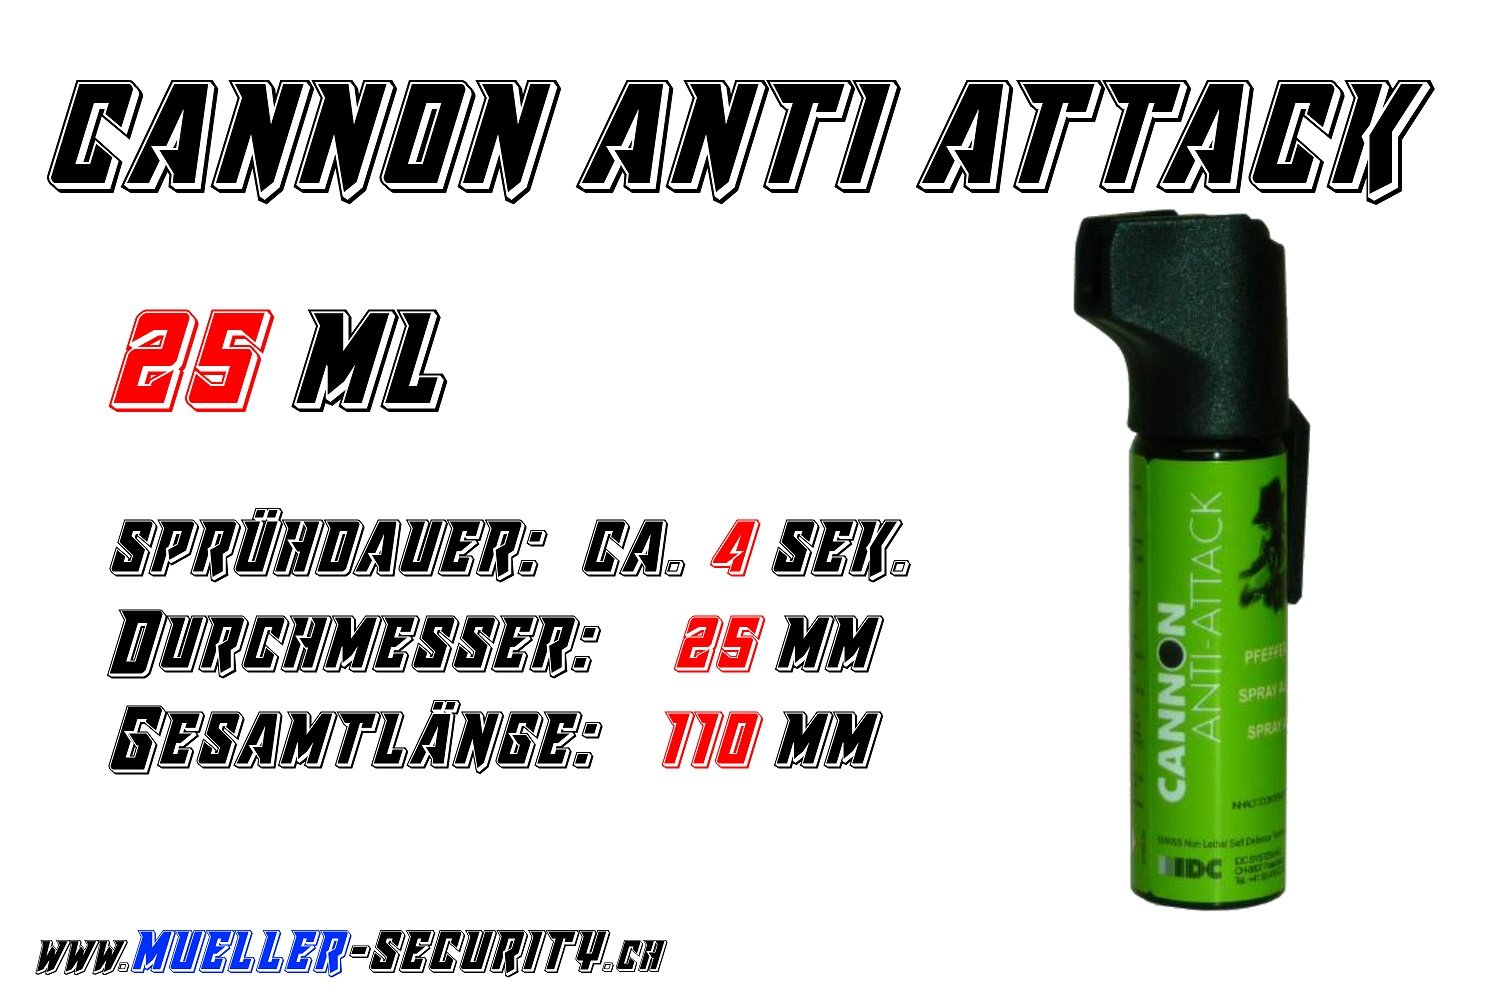 Pfefferspray - Cannon Anti Attack - Inhalt: 25 ml